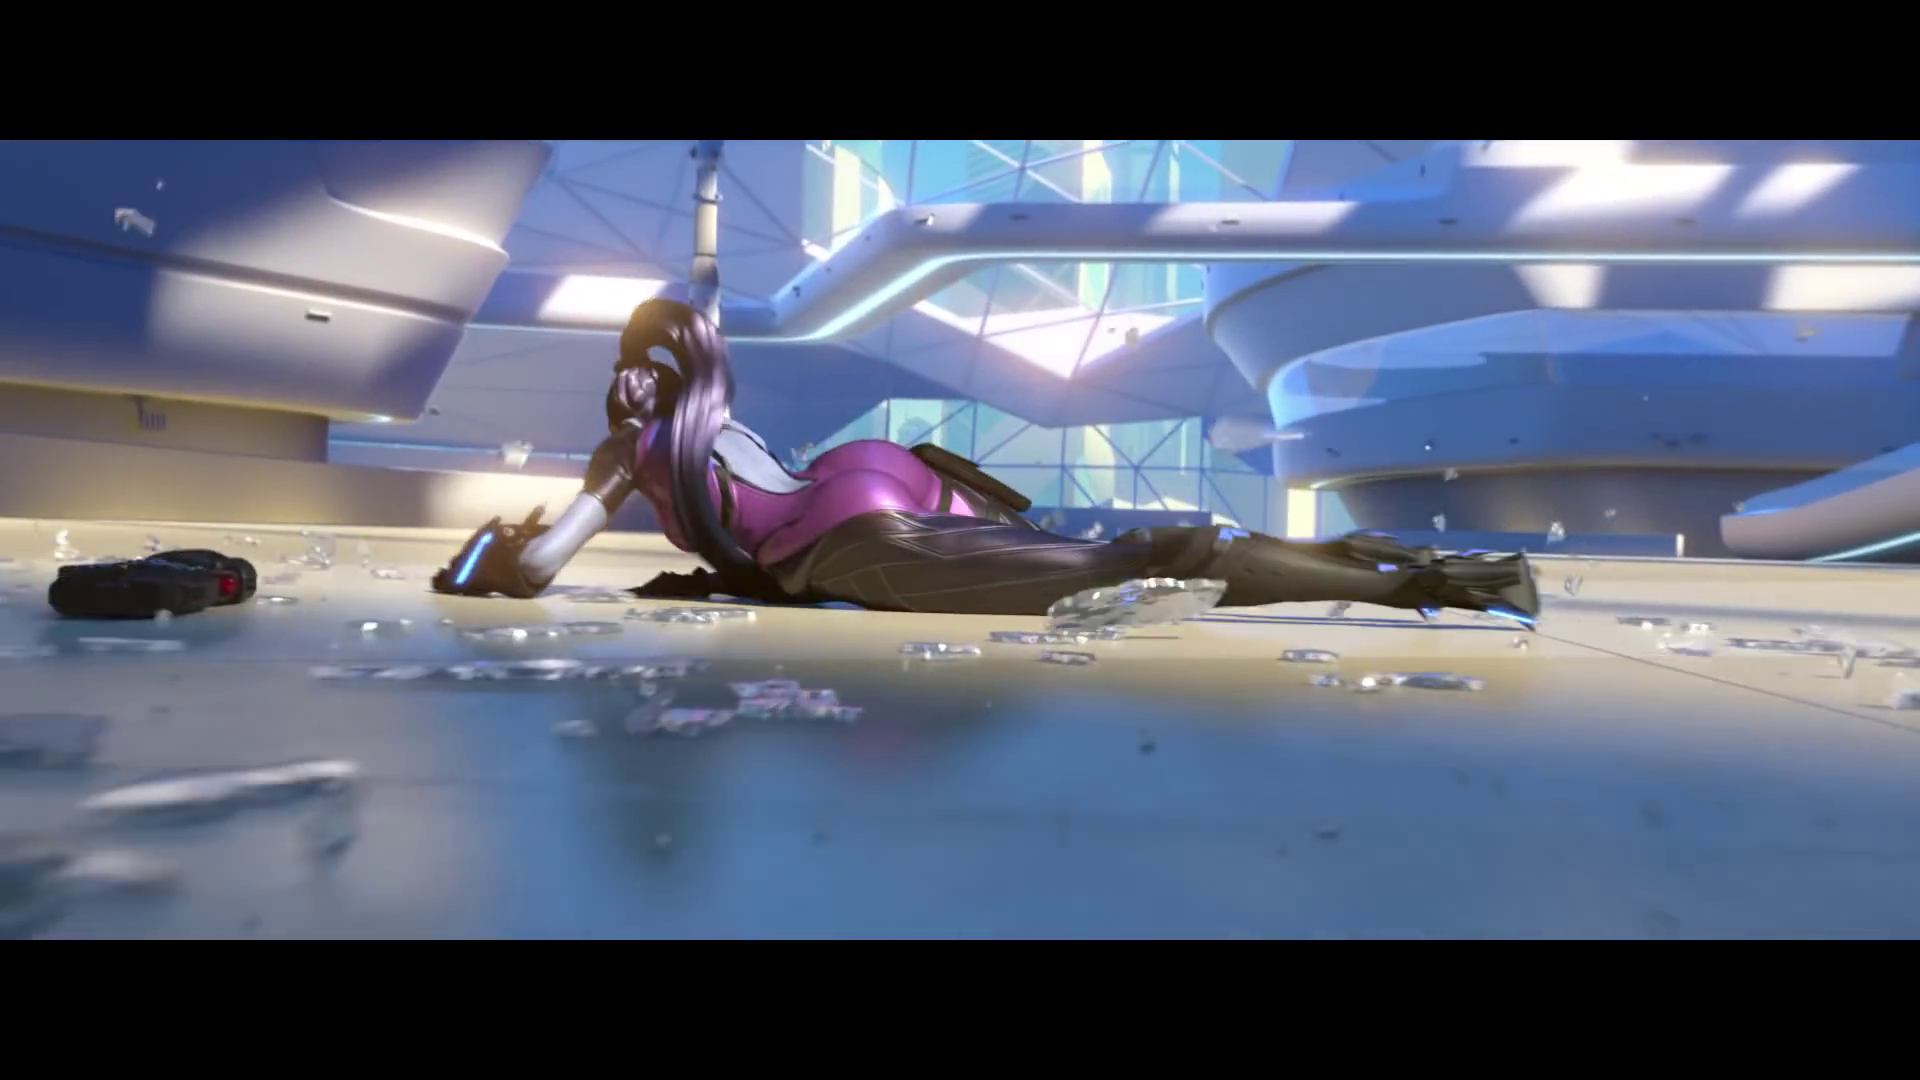 widowmaker overwatch wallpaper 1920x1080 - photo #2